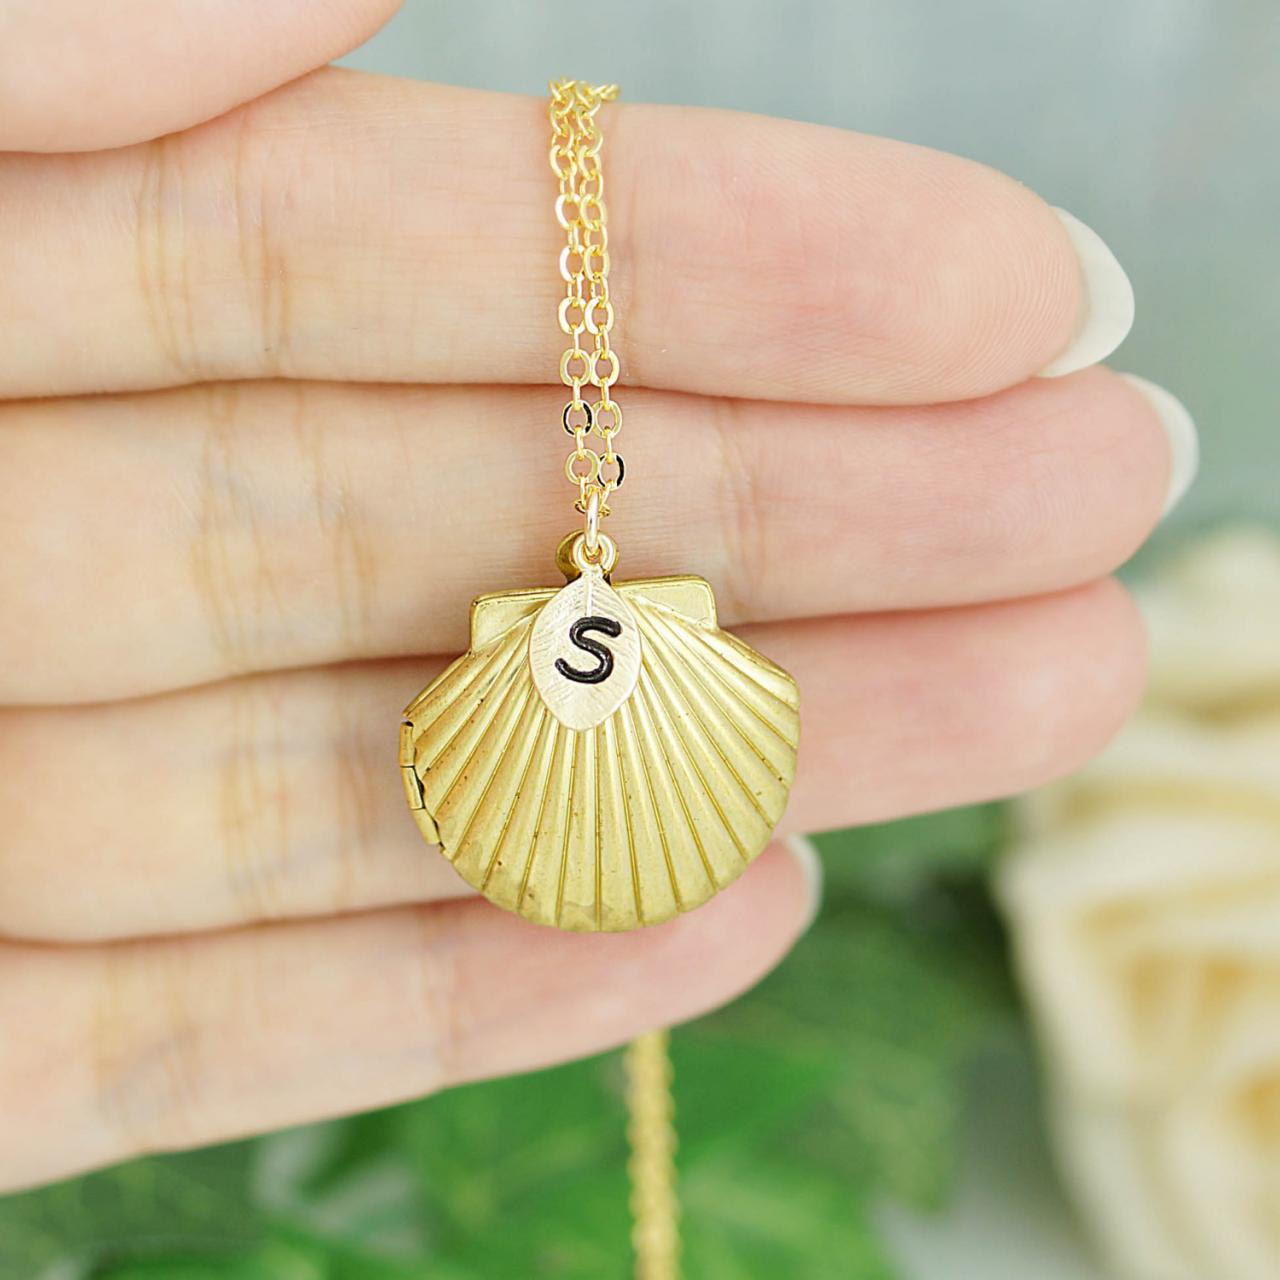 Bridesmaid Gifts Beach Wedding: Personalized Sea Shell Locket Necklace With Swarovski